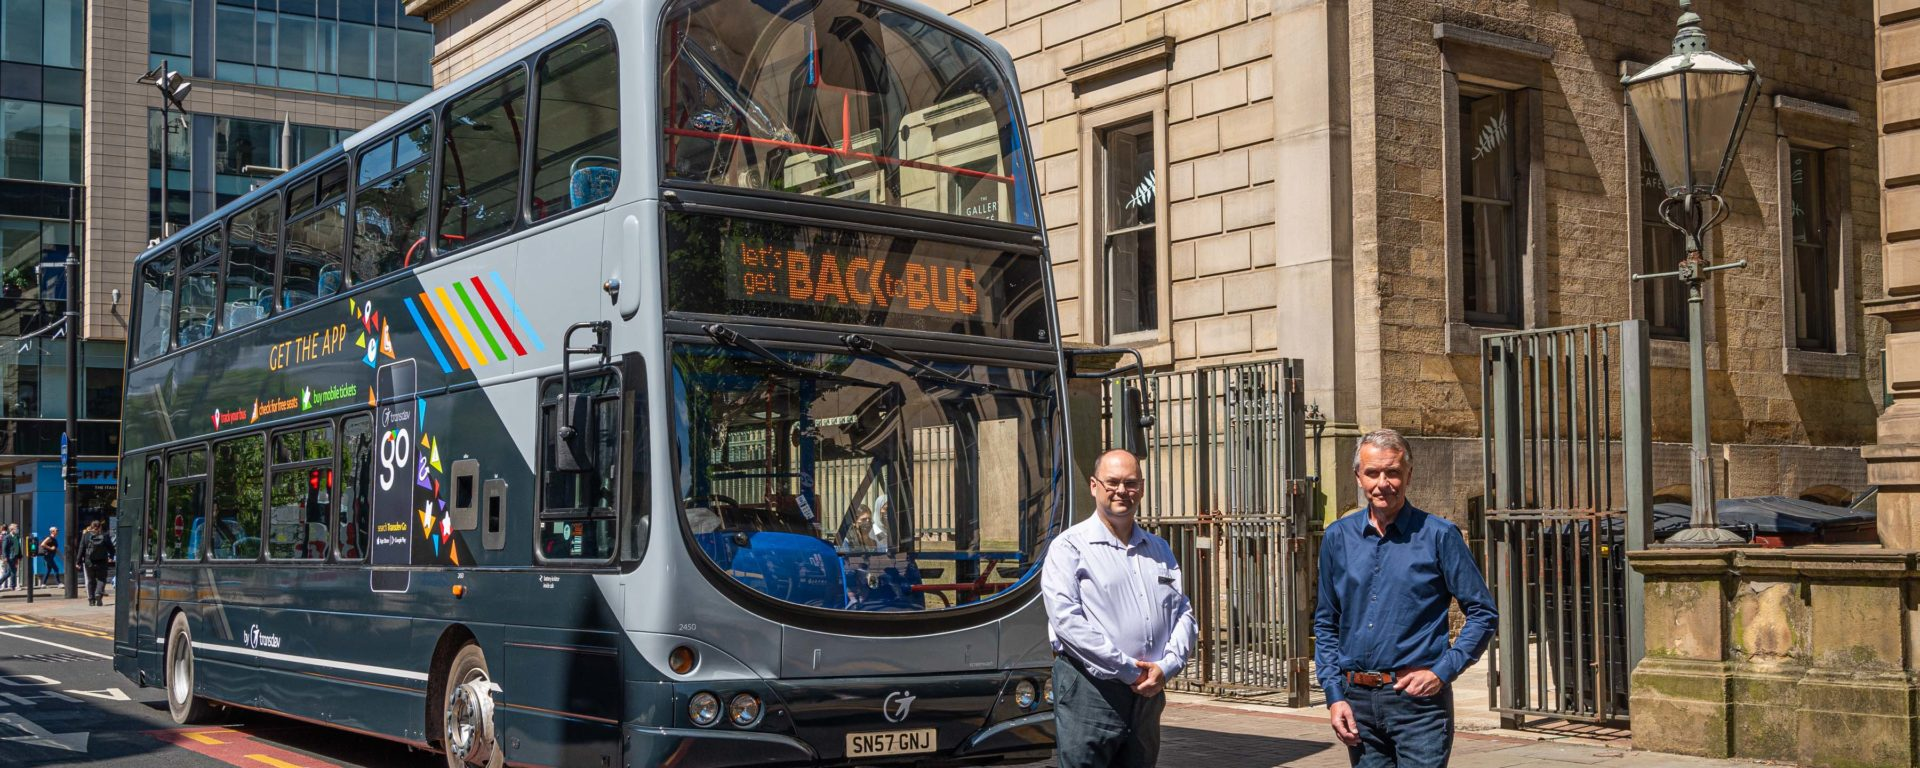 td-back-to-bus-potn